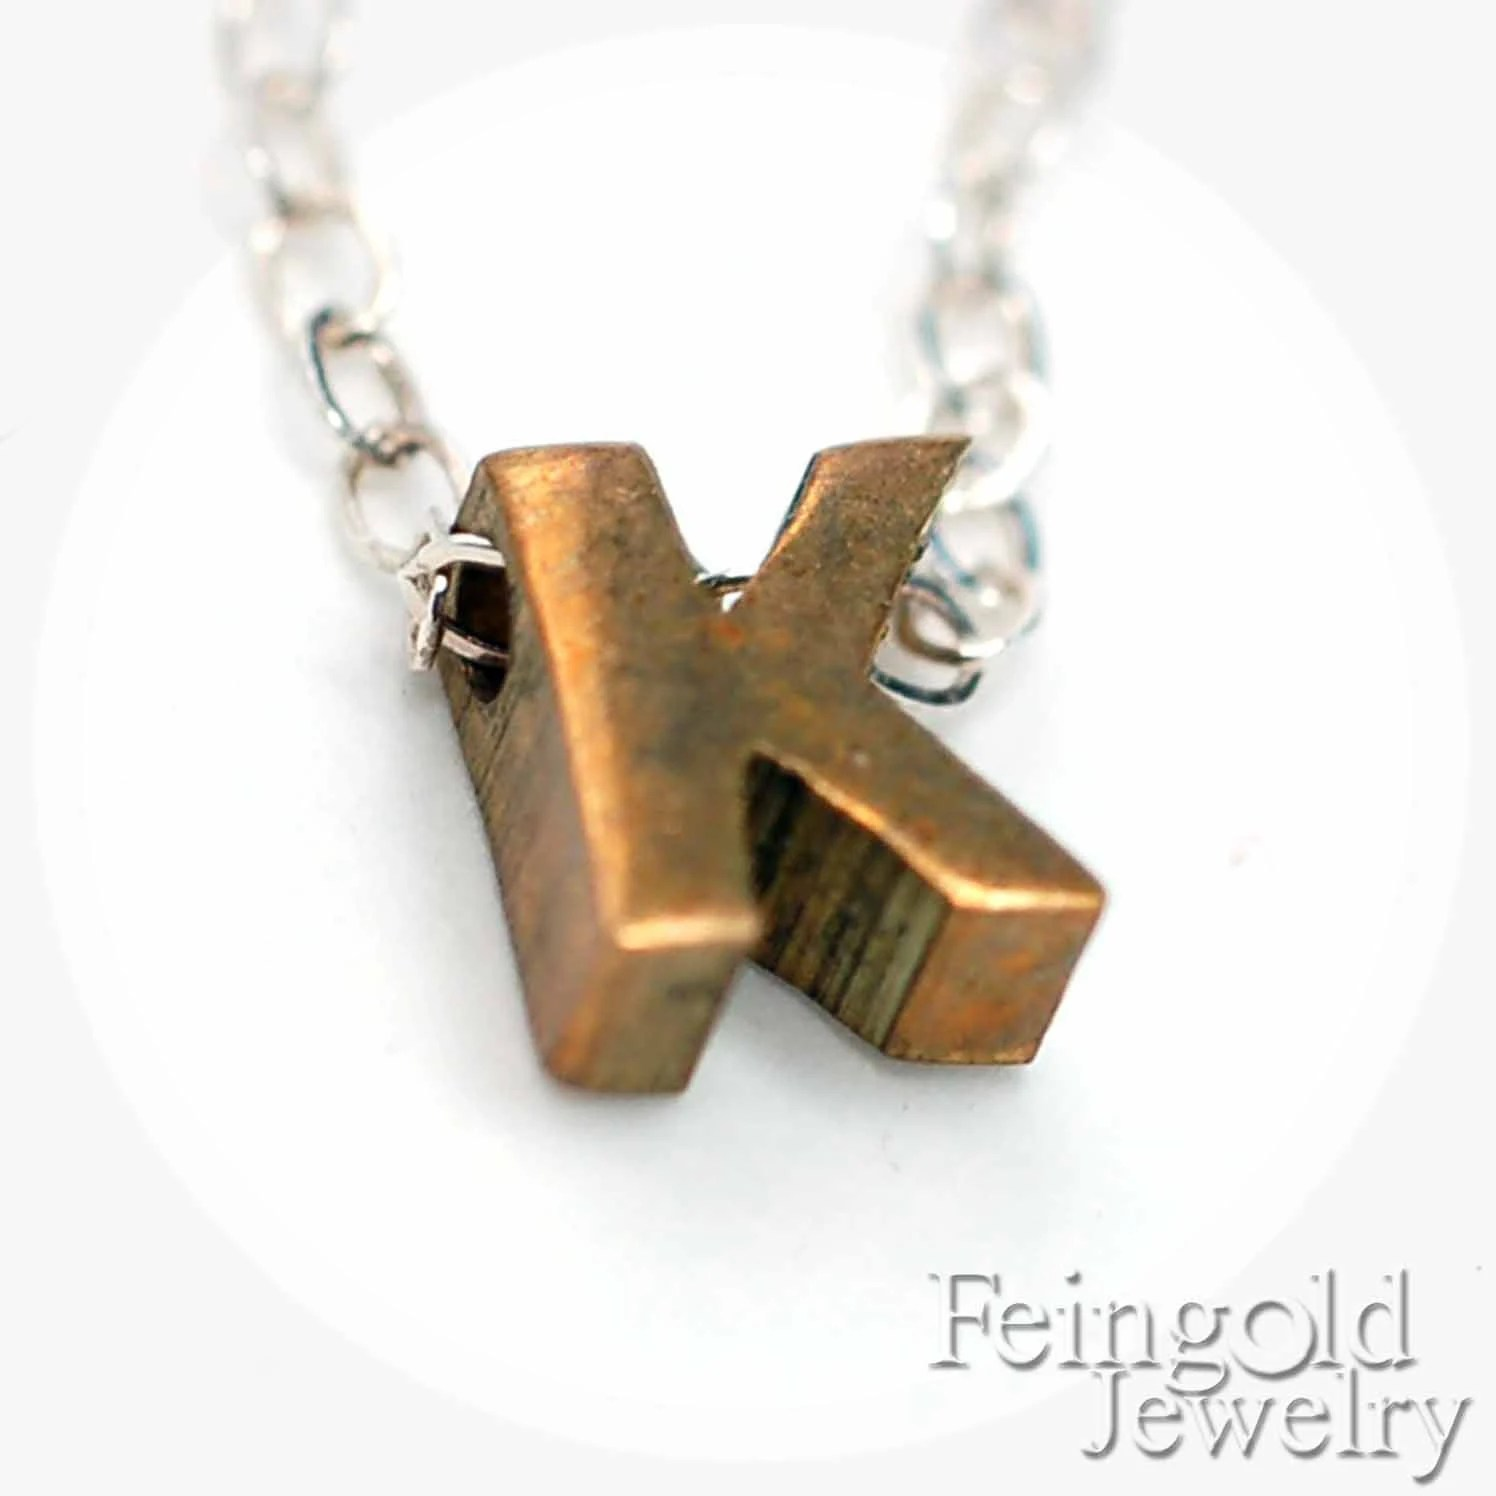 K Letter Necklace - Vintage Brass Initial Pendant on Sterling Silver Chain - Free US Shipping